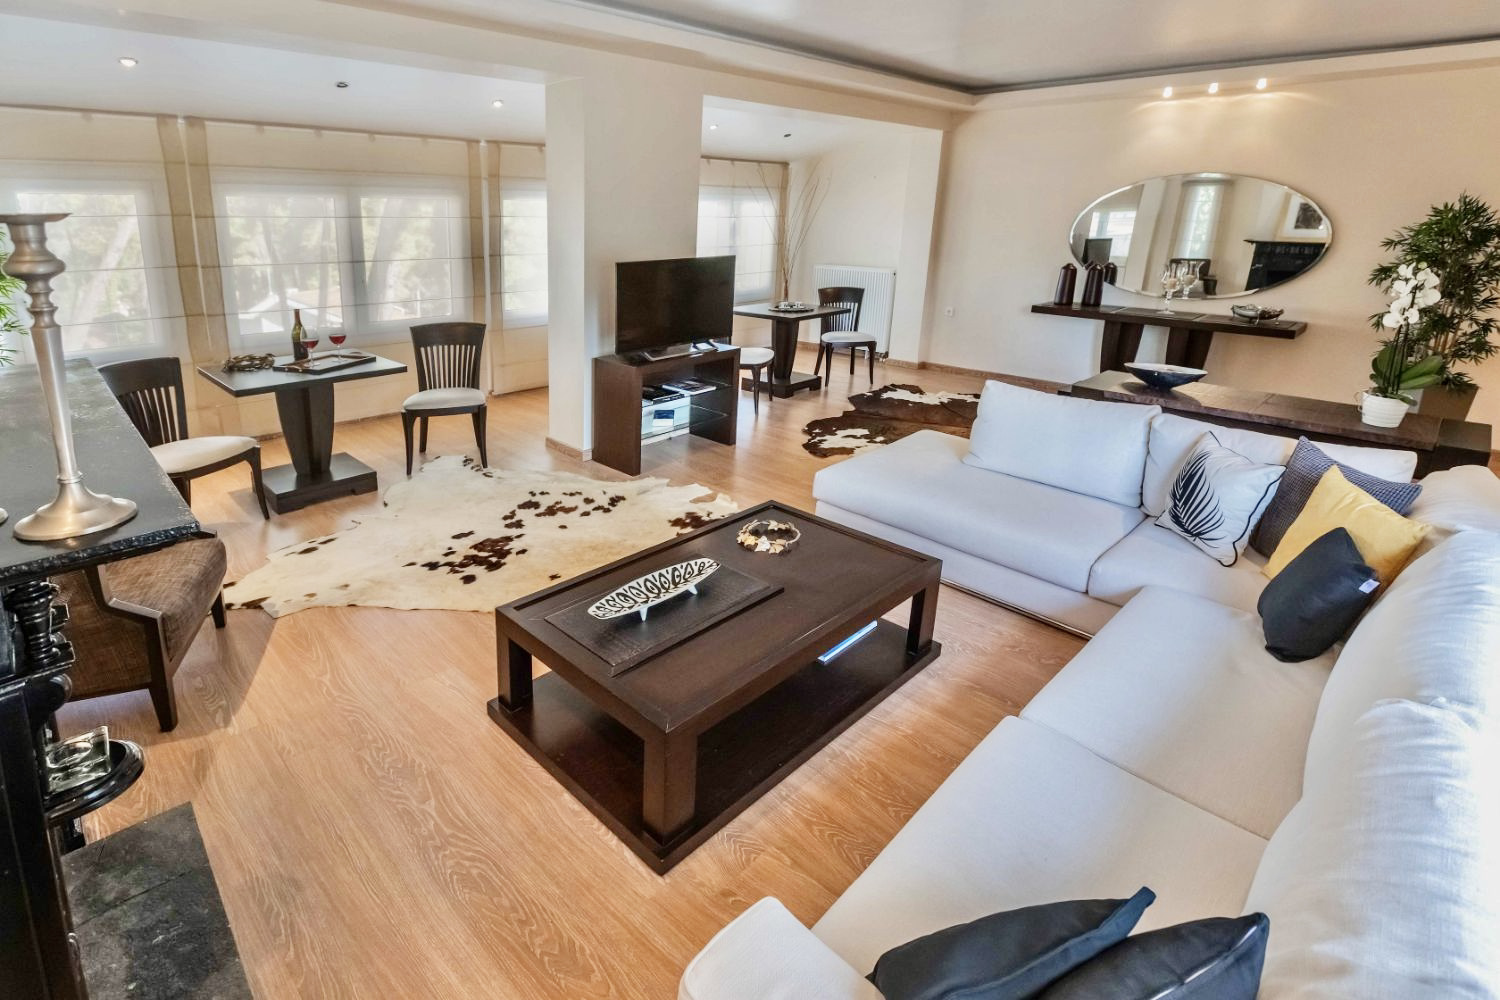 Living area and dining tables